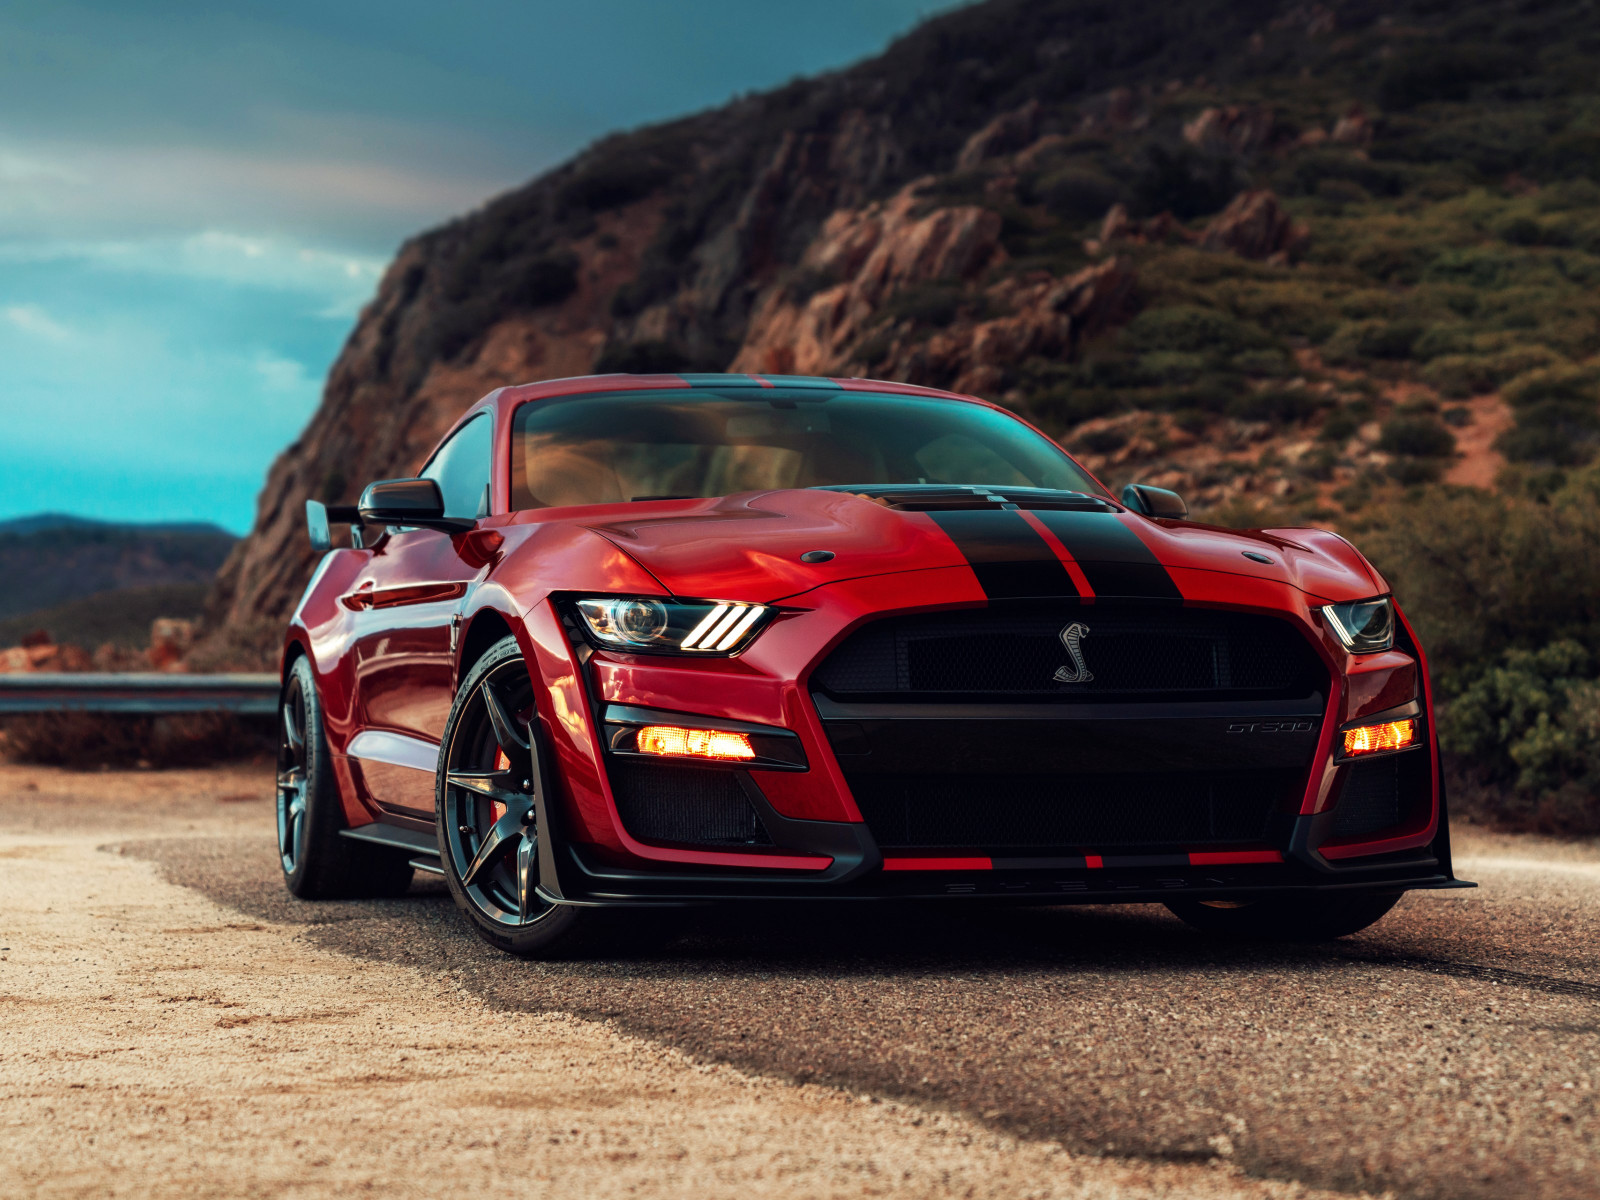 Ford Mustang Shelby GT500 | 1600x1200 wallpaper